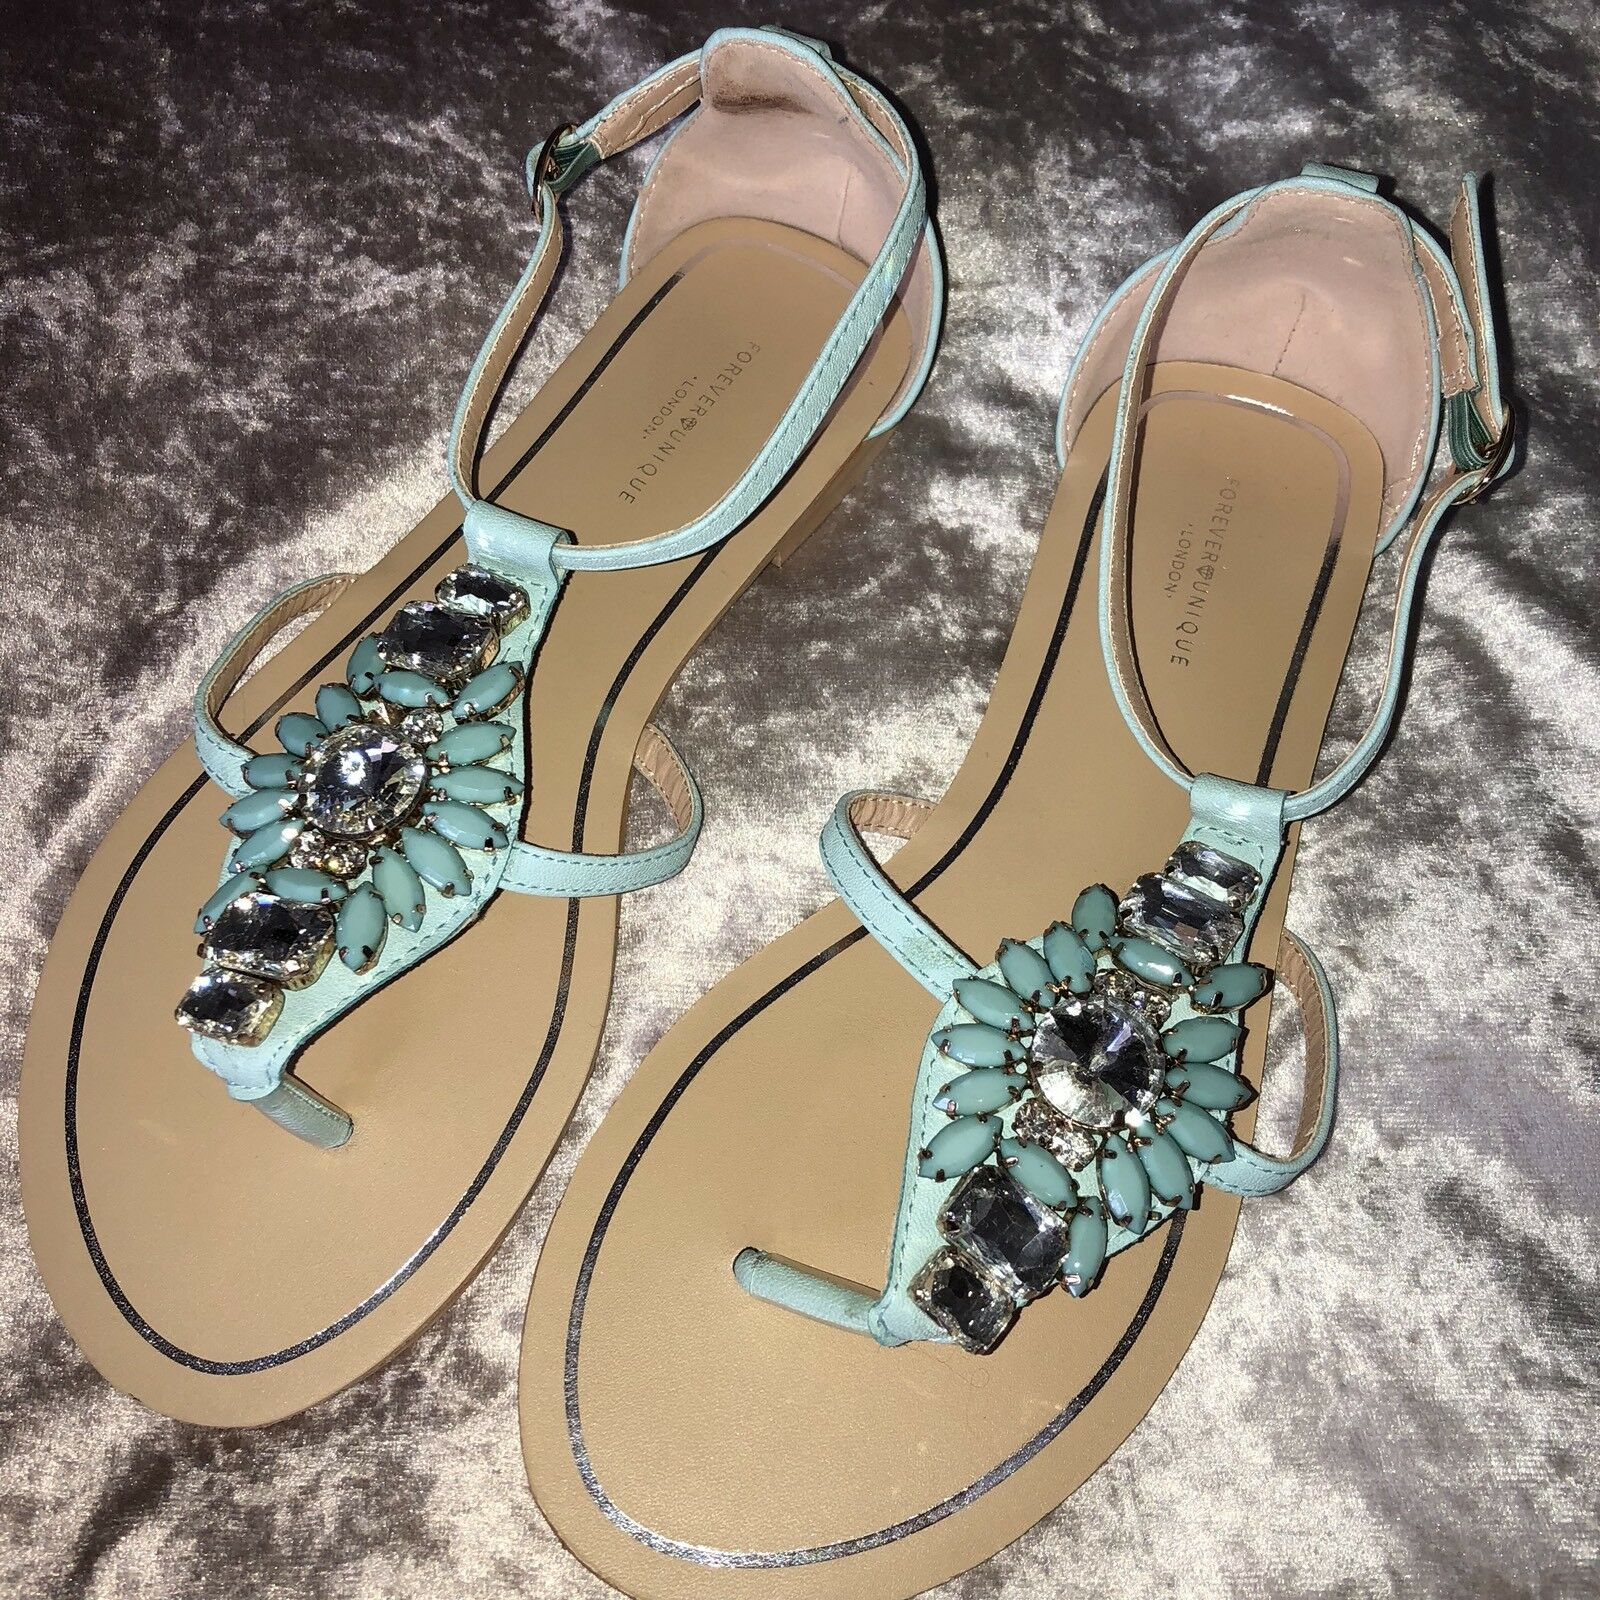 Forever Unique Gem Flavia Green Crystal Embellished Gem Unique Flip Flop Sandal Shoe 6 39 3a4649